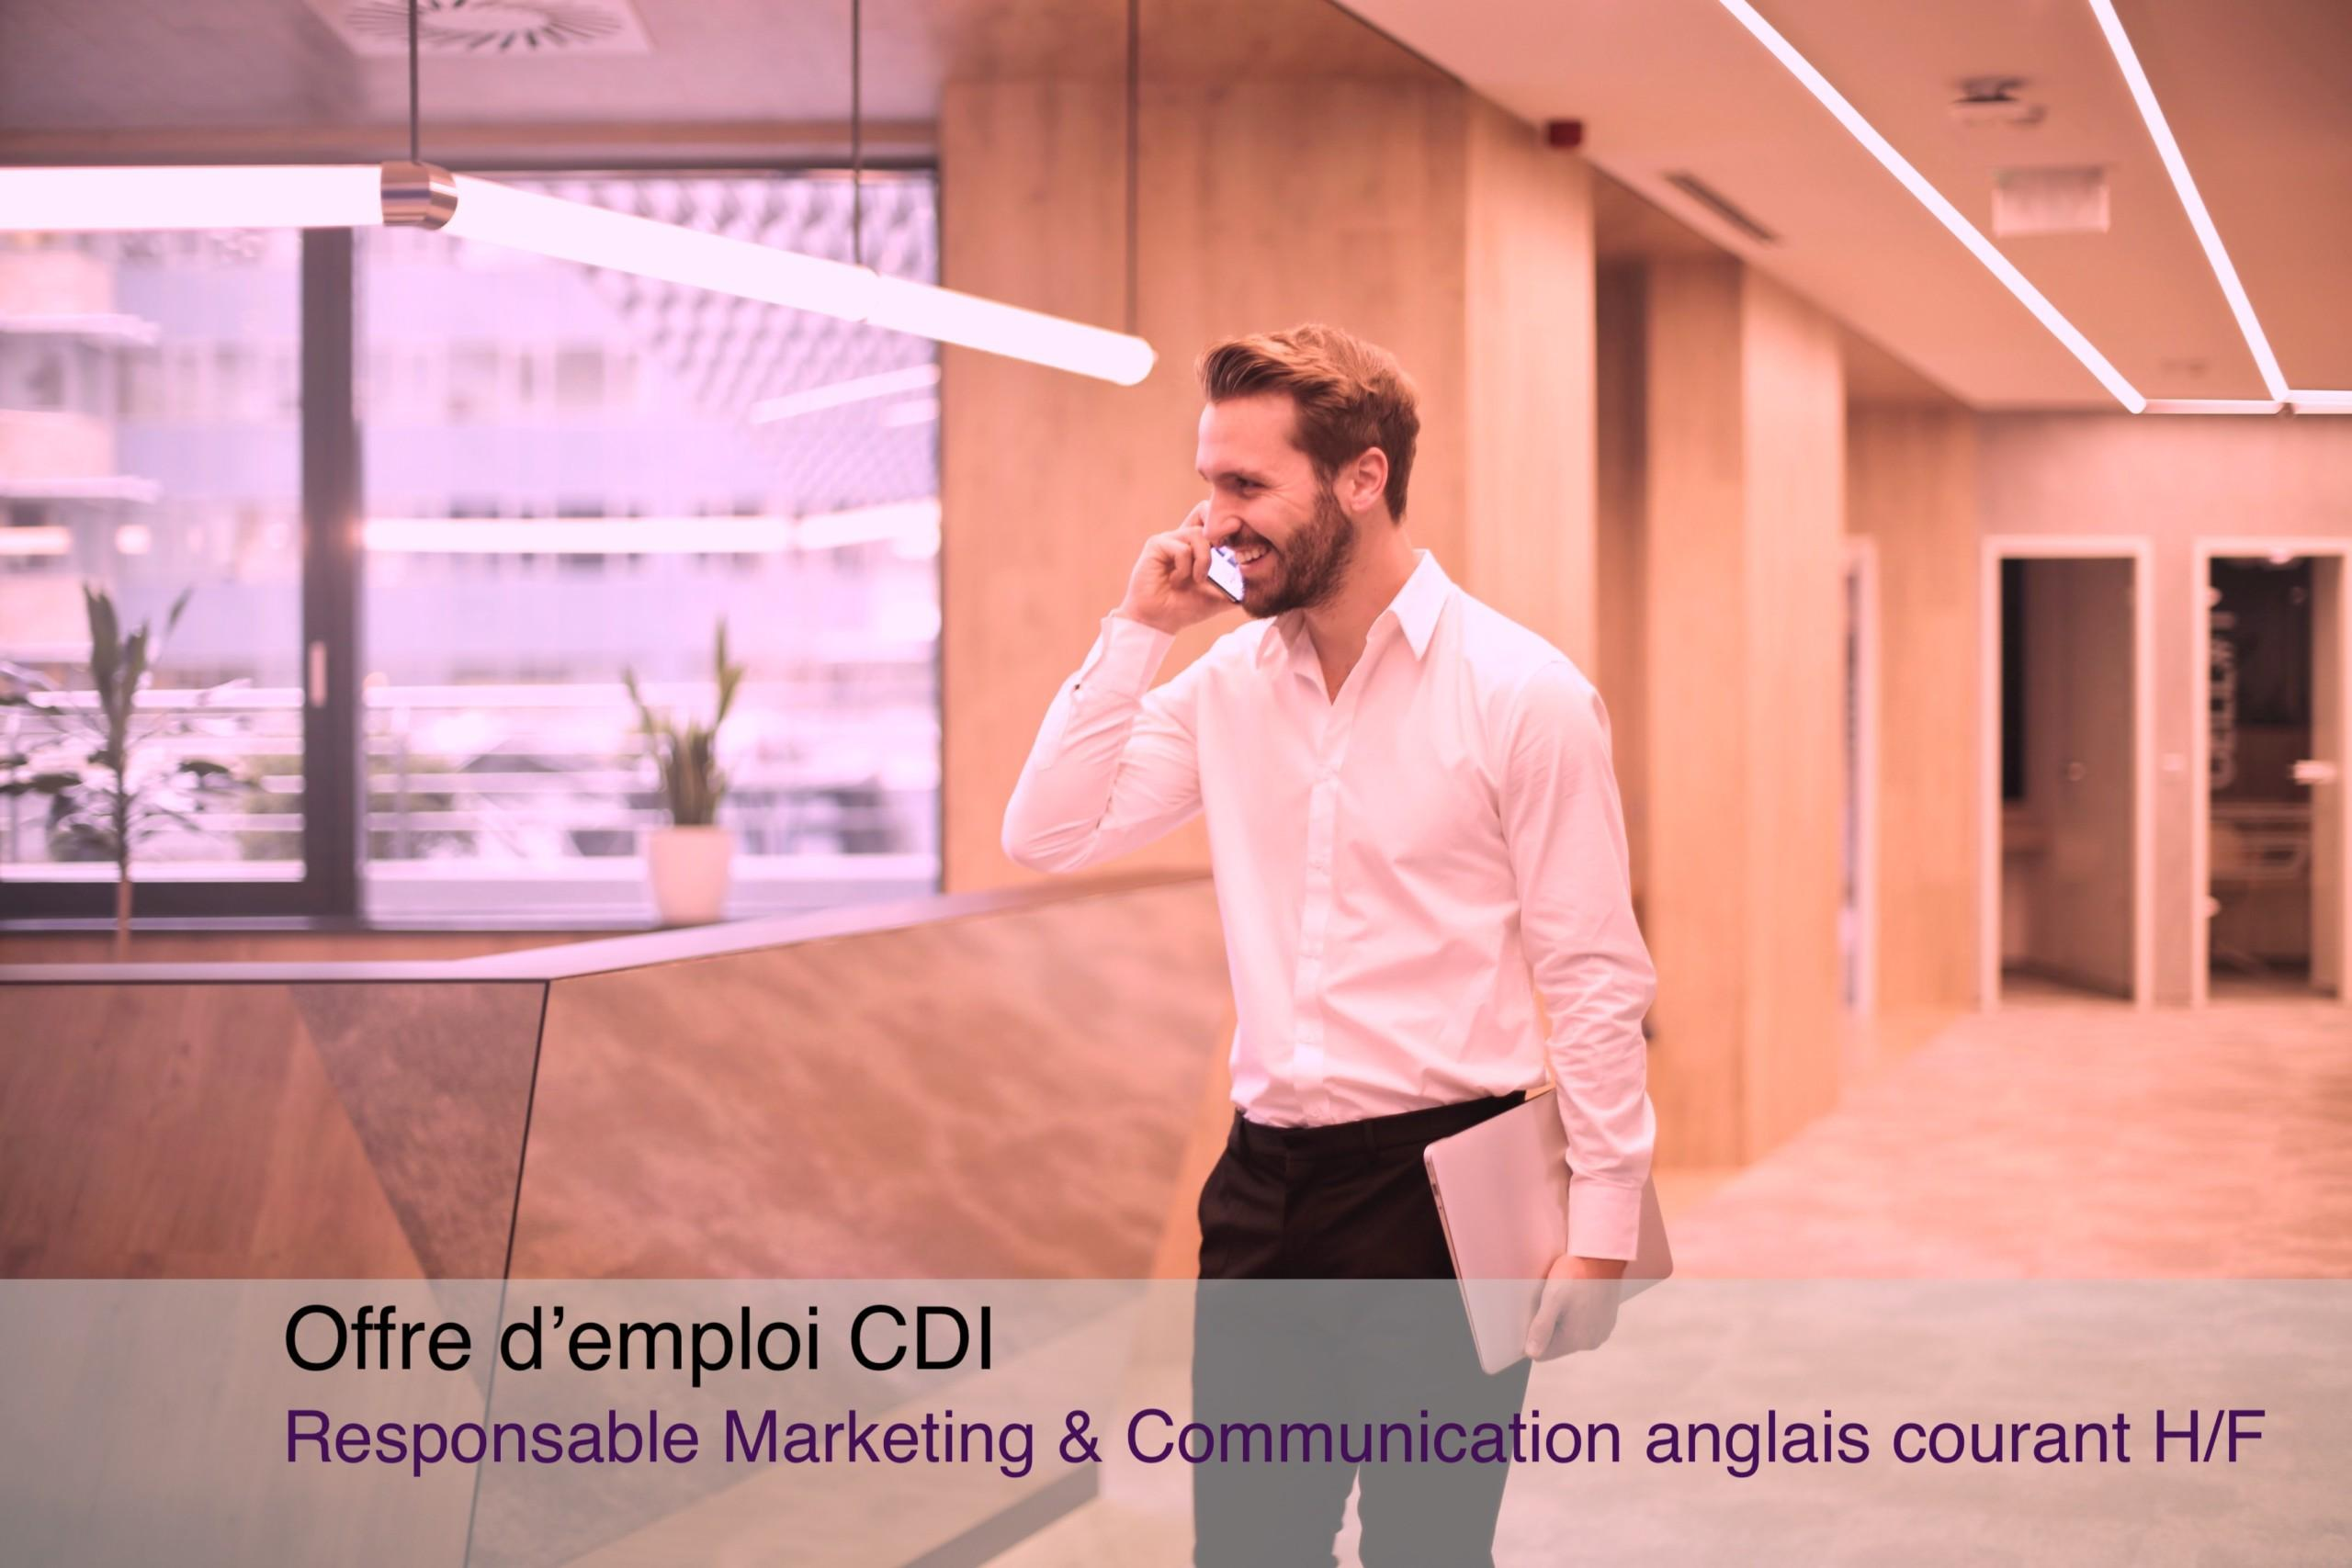 responsable marketing communication